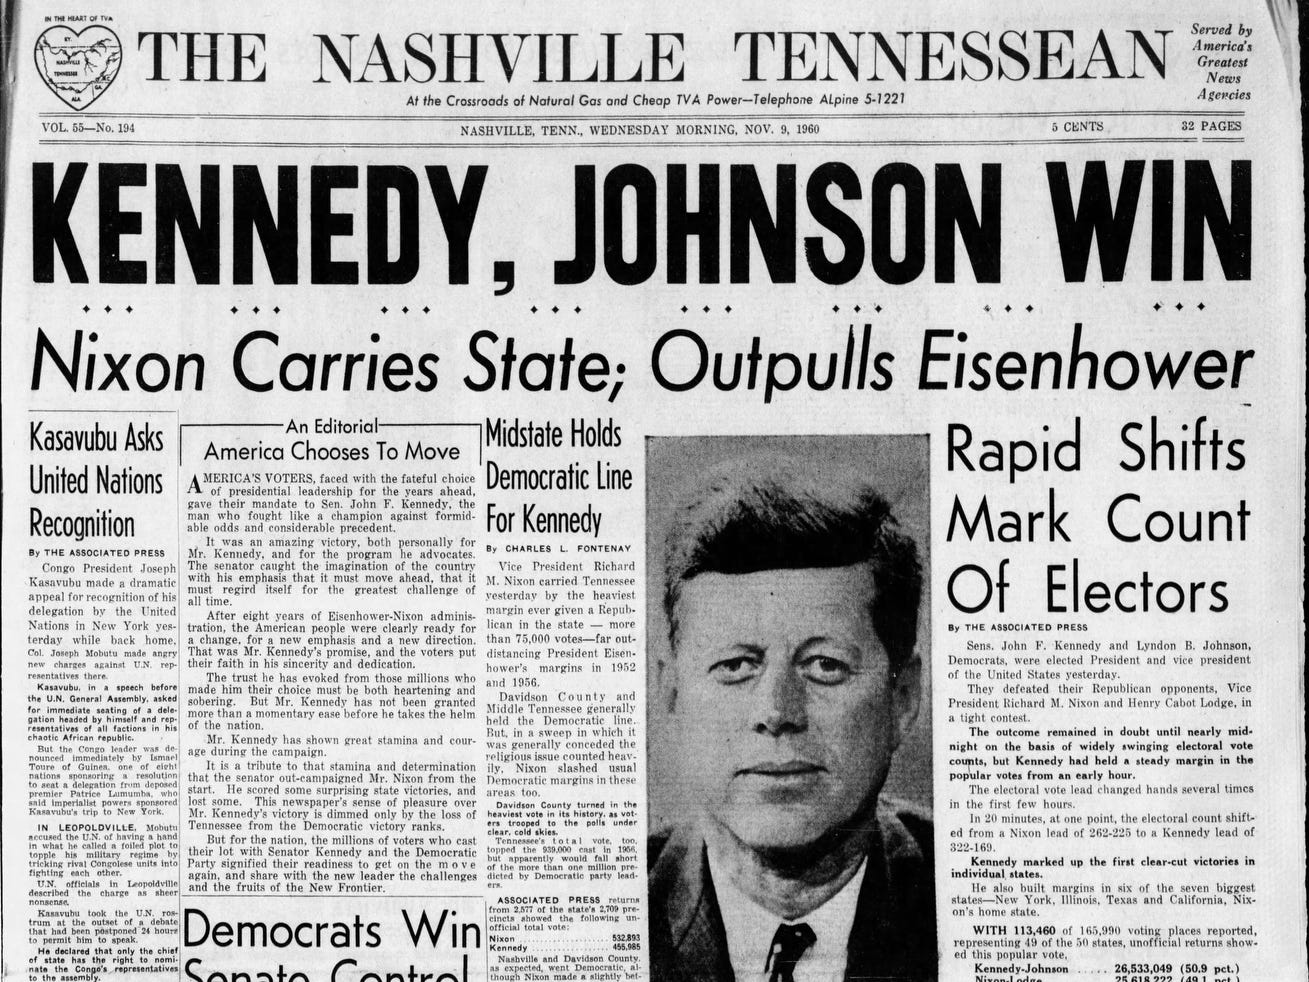 The front page of the Nov. 9, 1960 of The Tennessean which John F. Kennedy won the presidential election.